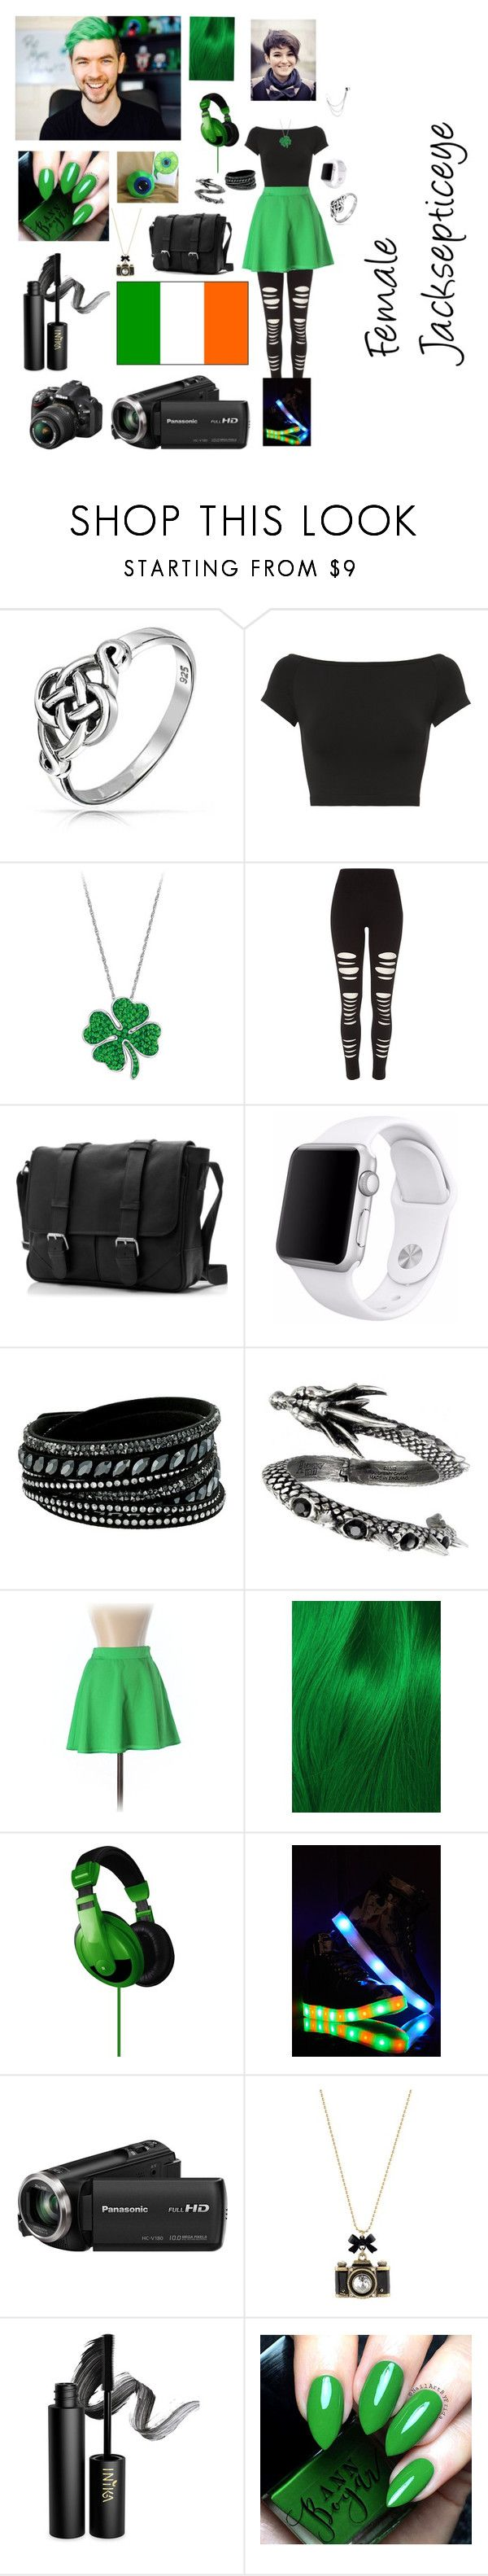 """""""Female Jacksepticeye"""" by christinacrowder124 on Polyvore featuring Bling Jewelry, Helmut Lang, River Island, Apple, Swarovski, Naven, Lime Crime, Chase & Chloe, Panasonic and Betsey Johnson"""